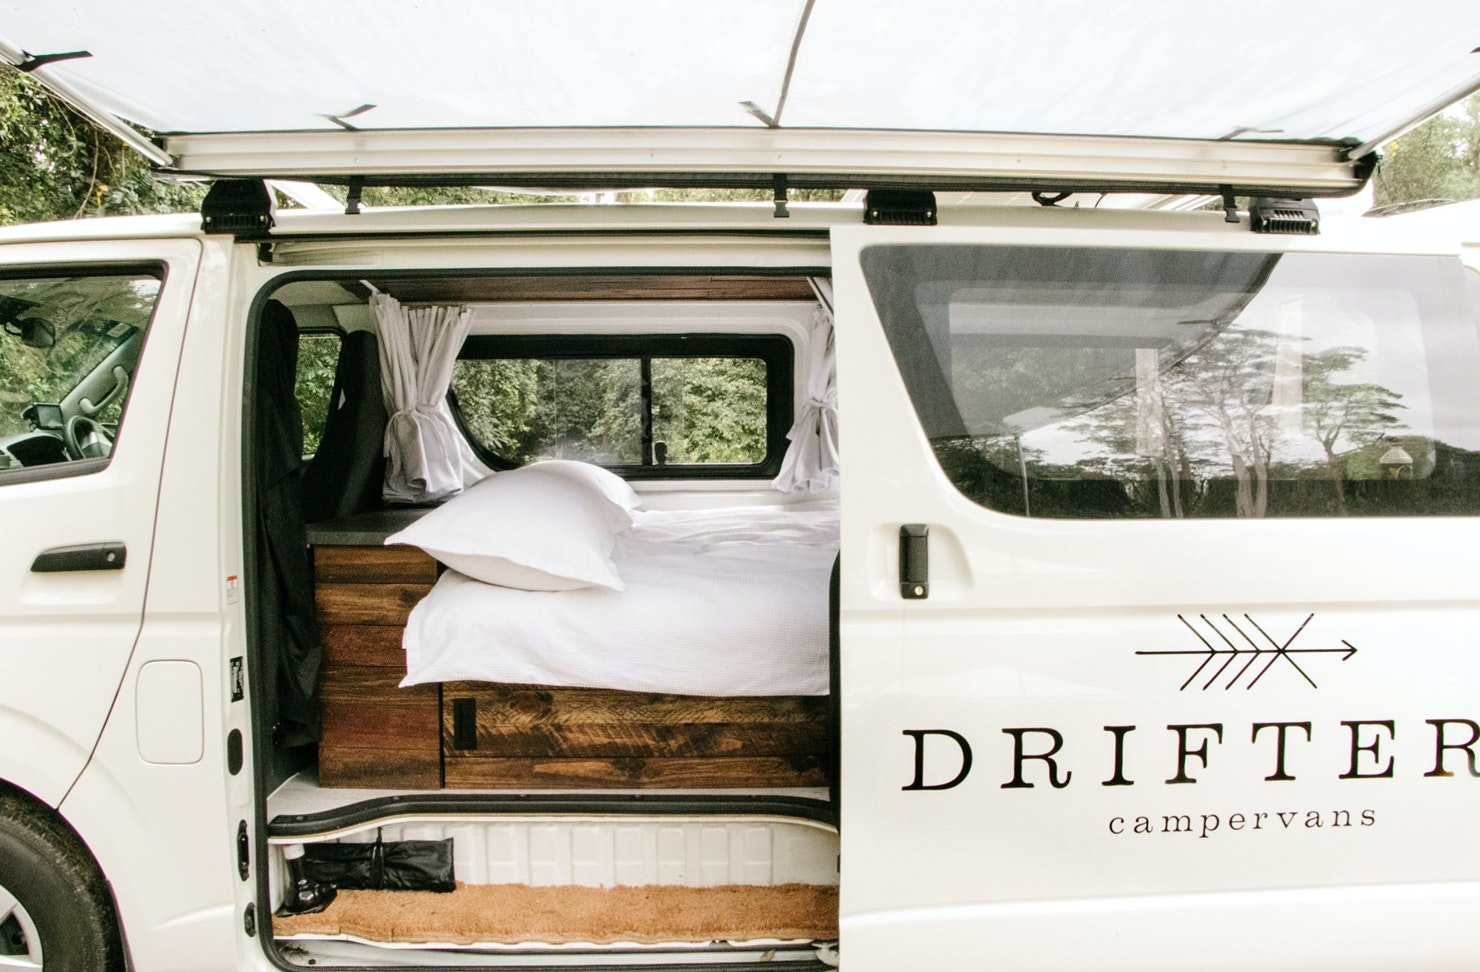 A white camper van with a mattress inside.